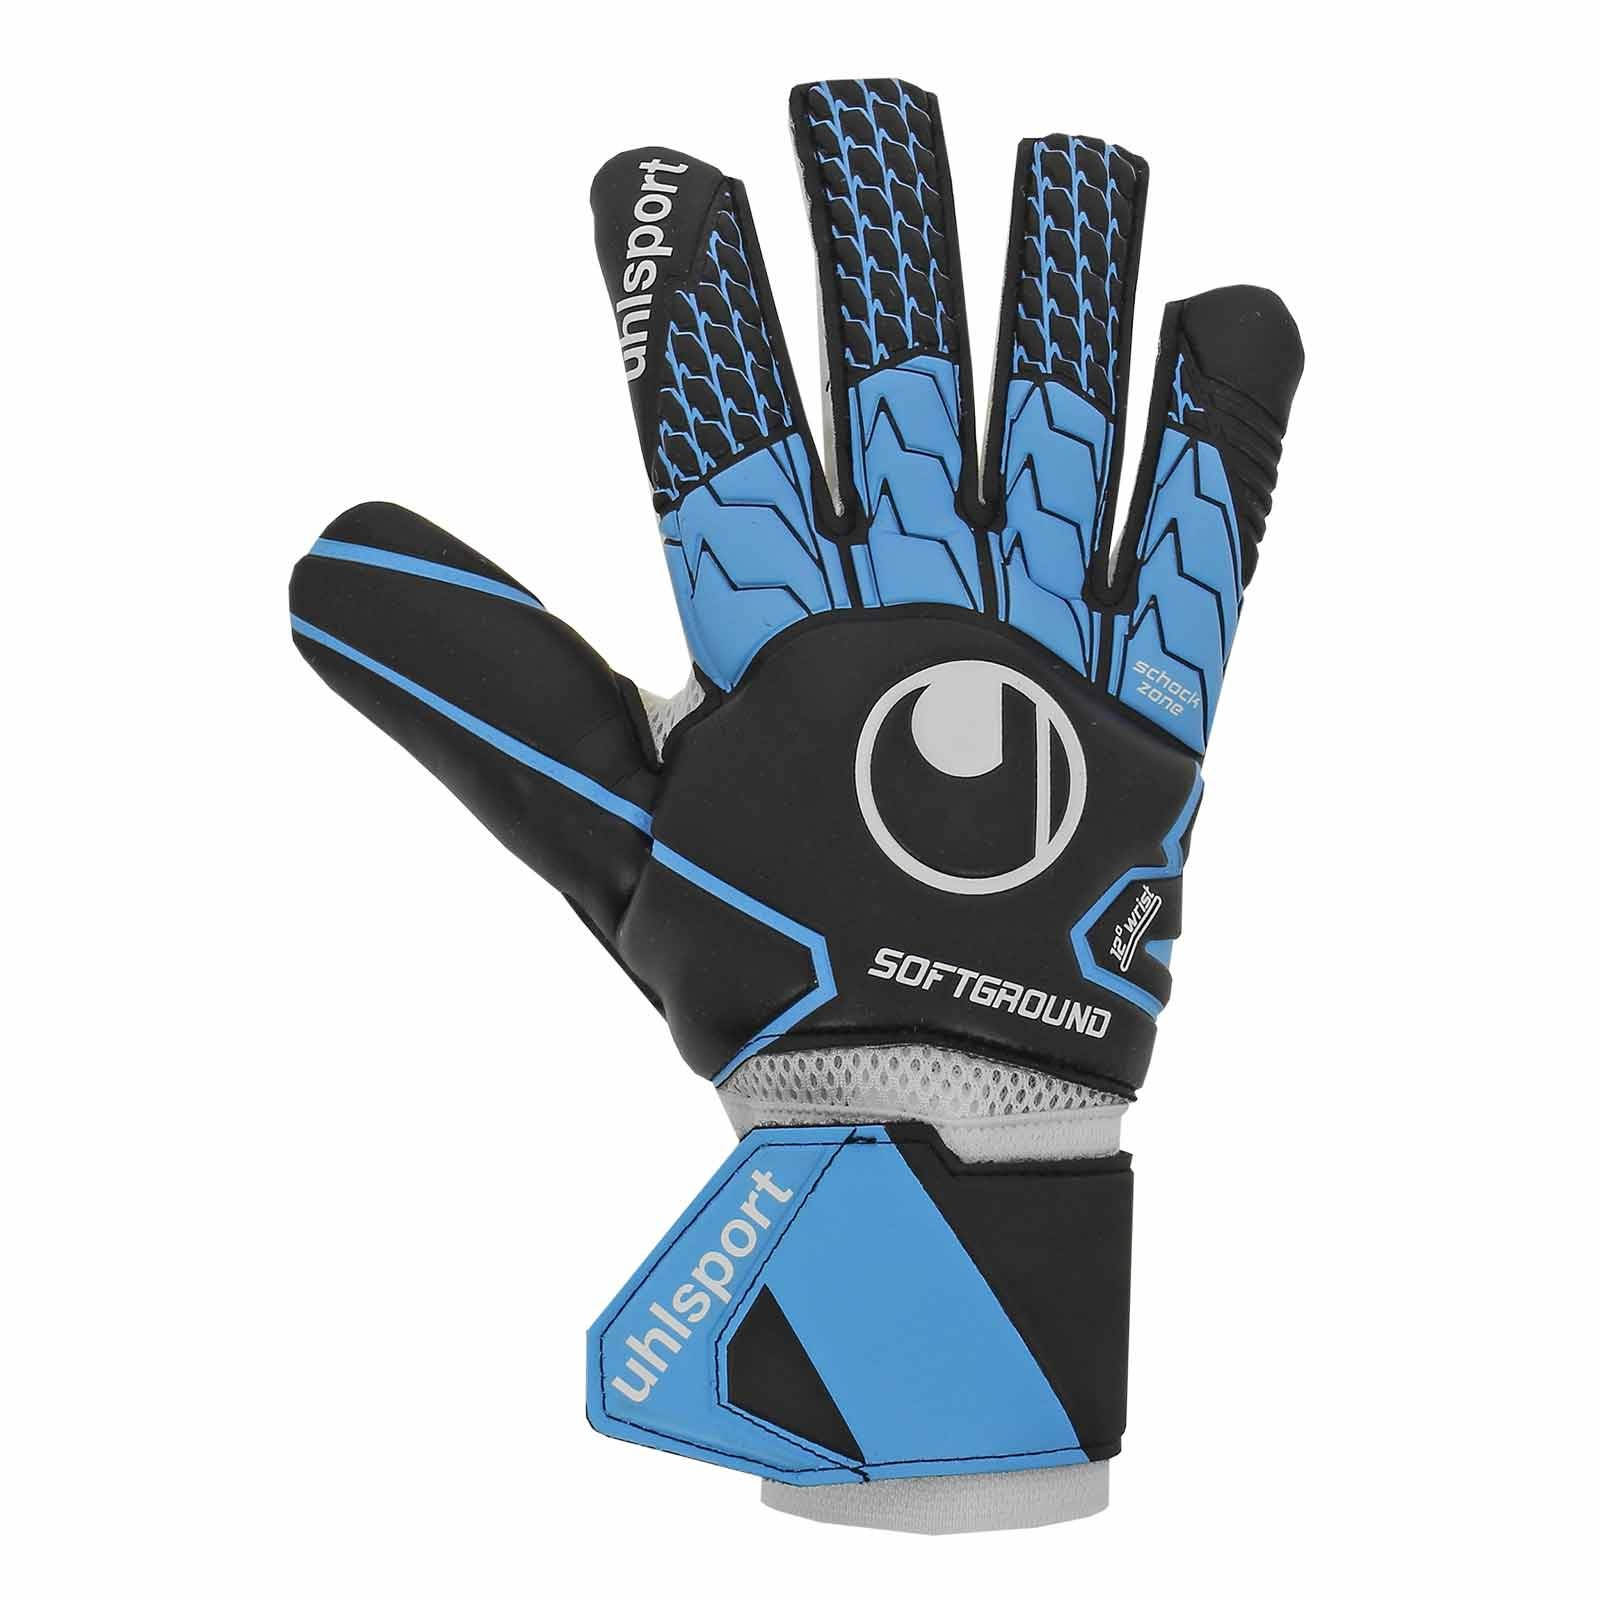 Uhlsport-SOFT-HN-Competition-Gant-de-Gardien-Keeper-Gloves-Bleu-noir miniature 3